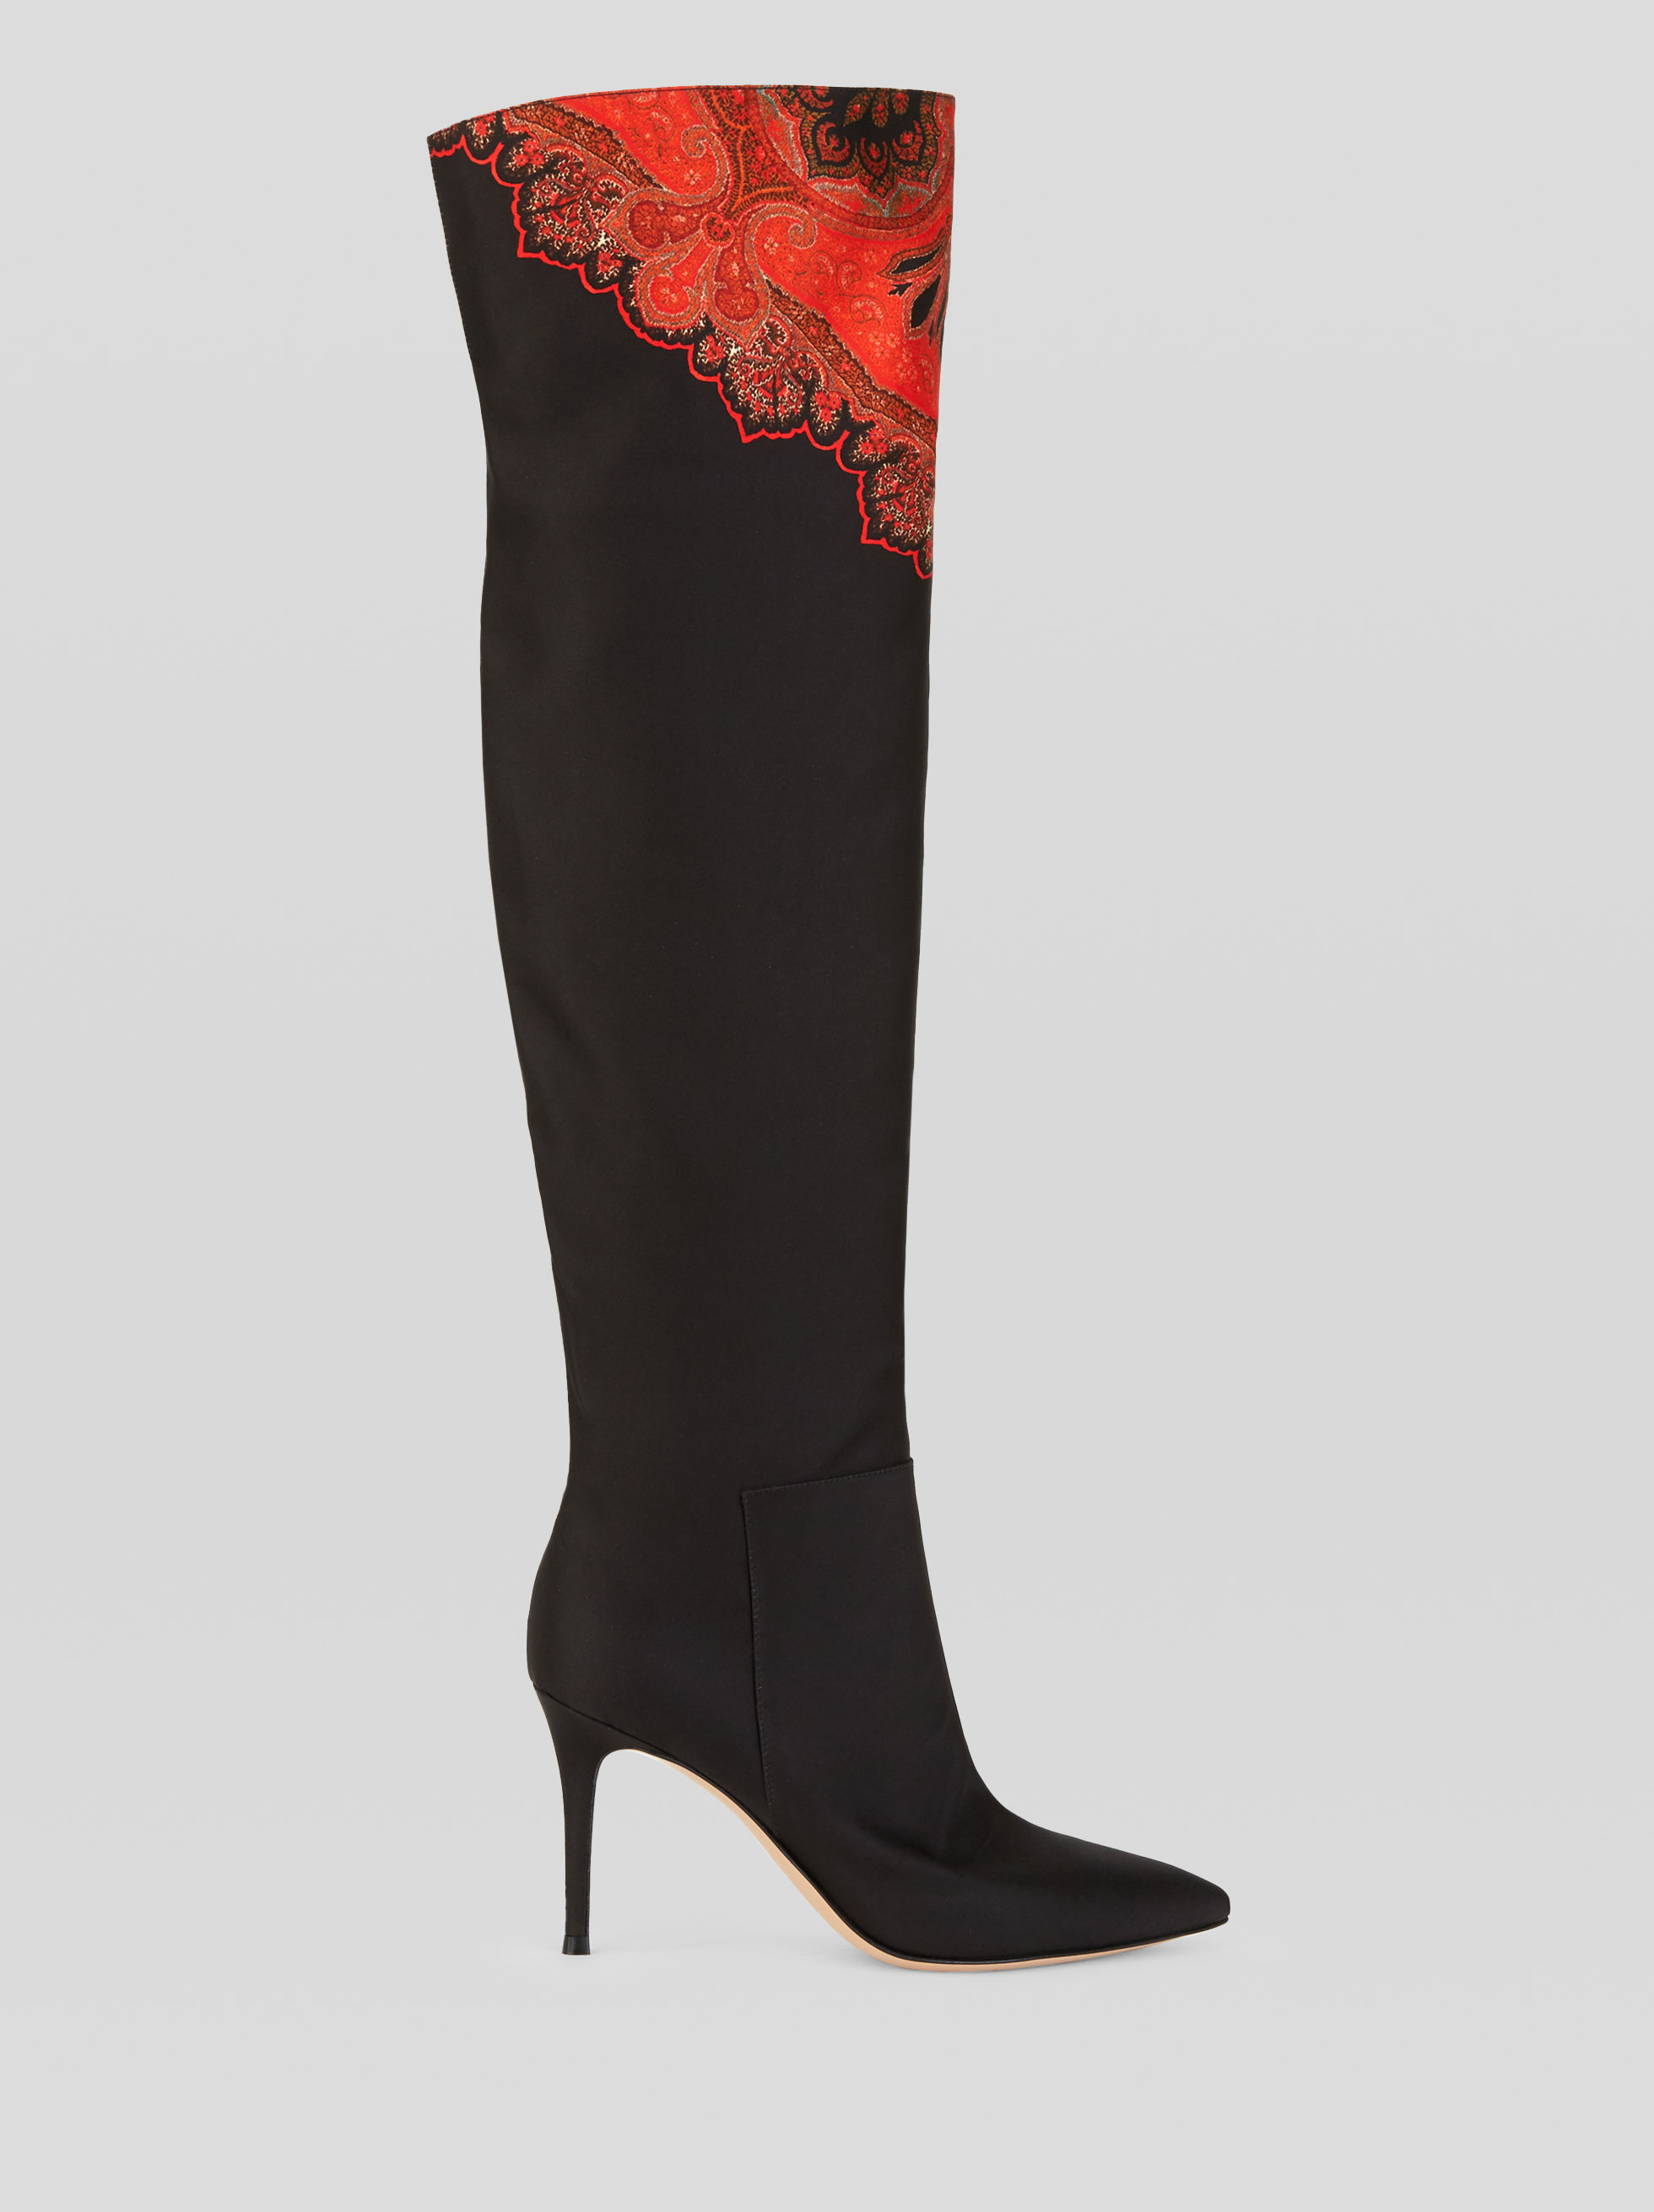 PAISLEY GIANVITO ROSSI BOOTS FOR ETRO